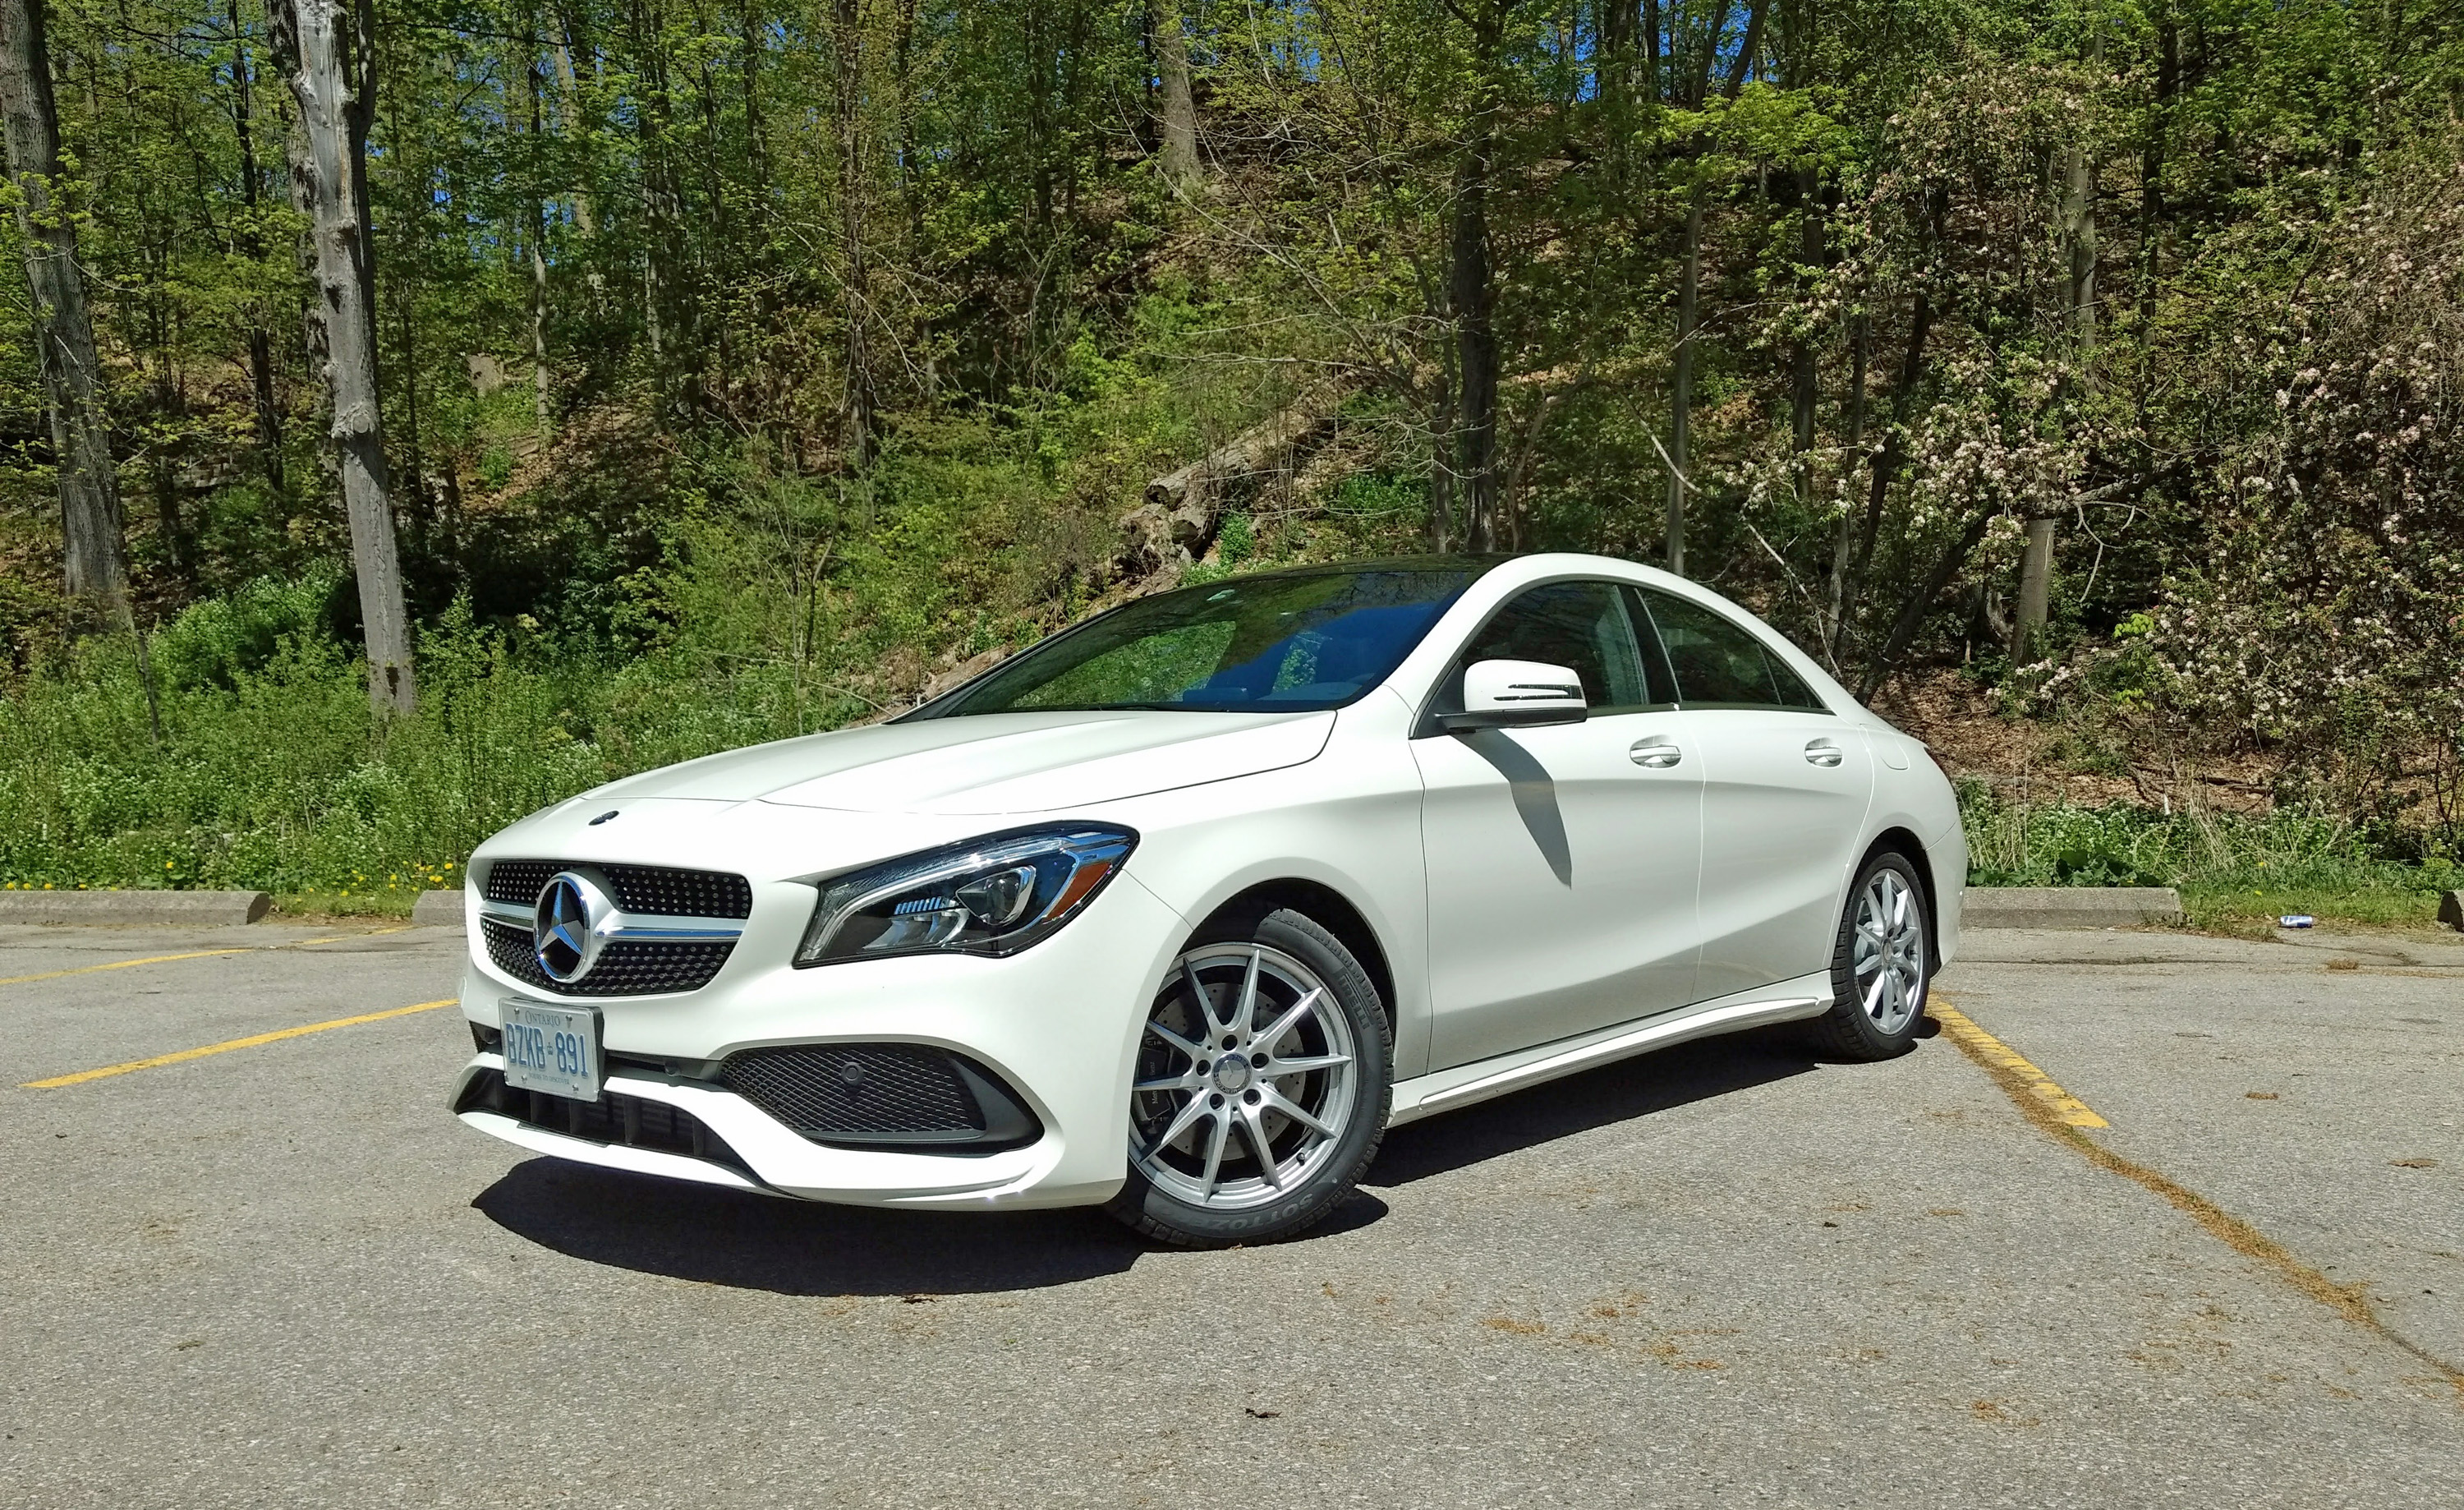 exterior benz min pictures mb size mods cla mercedes name videos my forum views